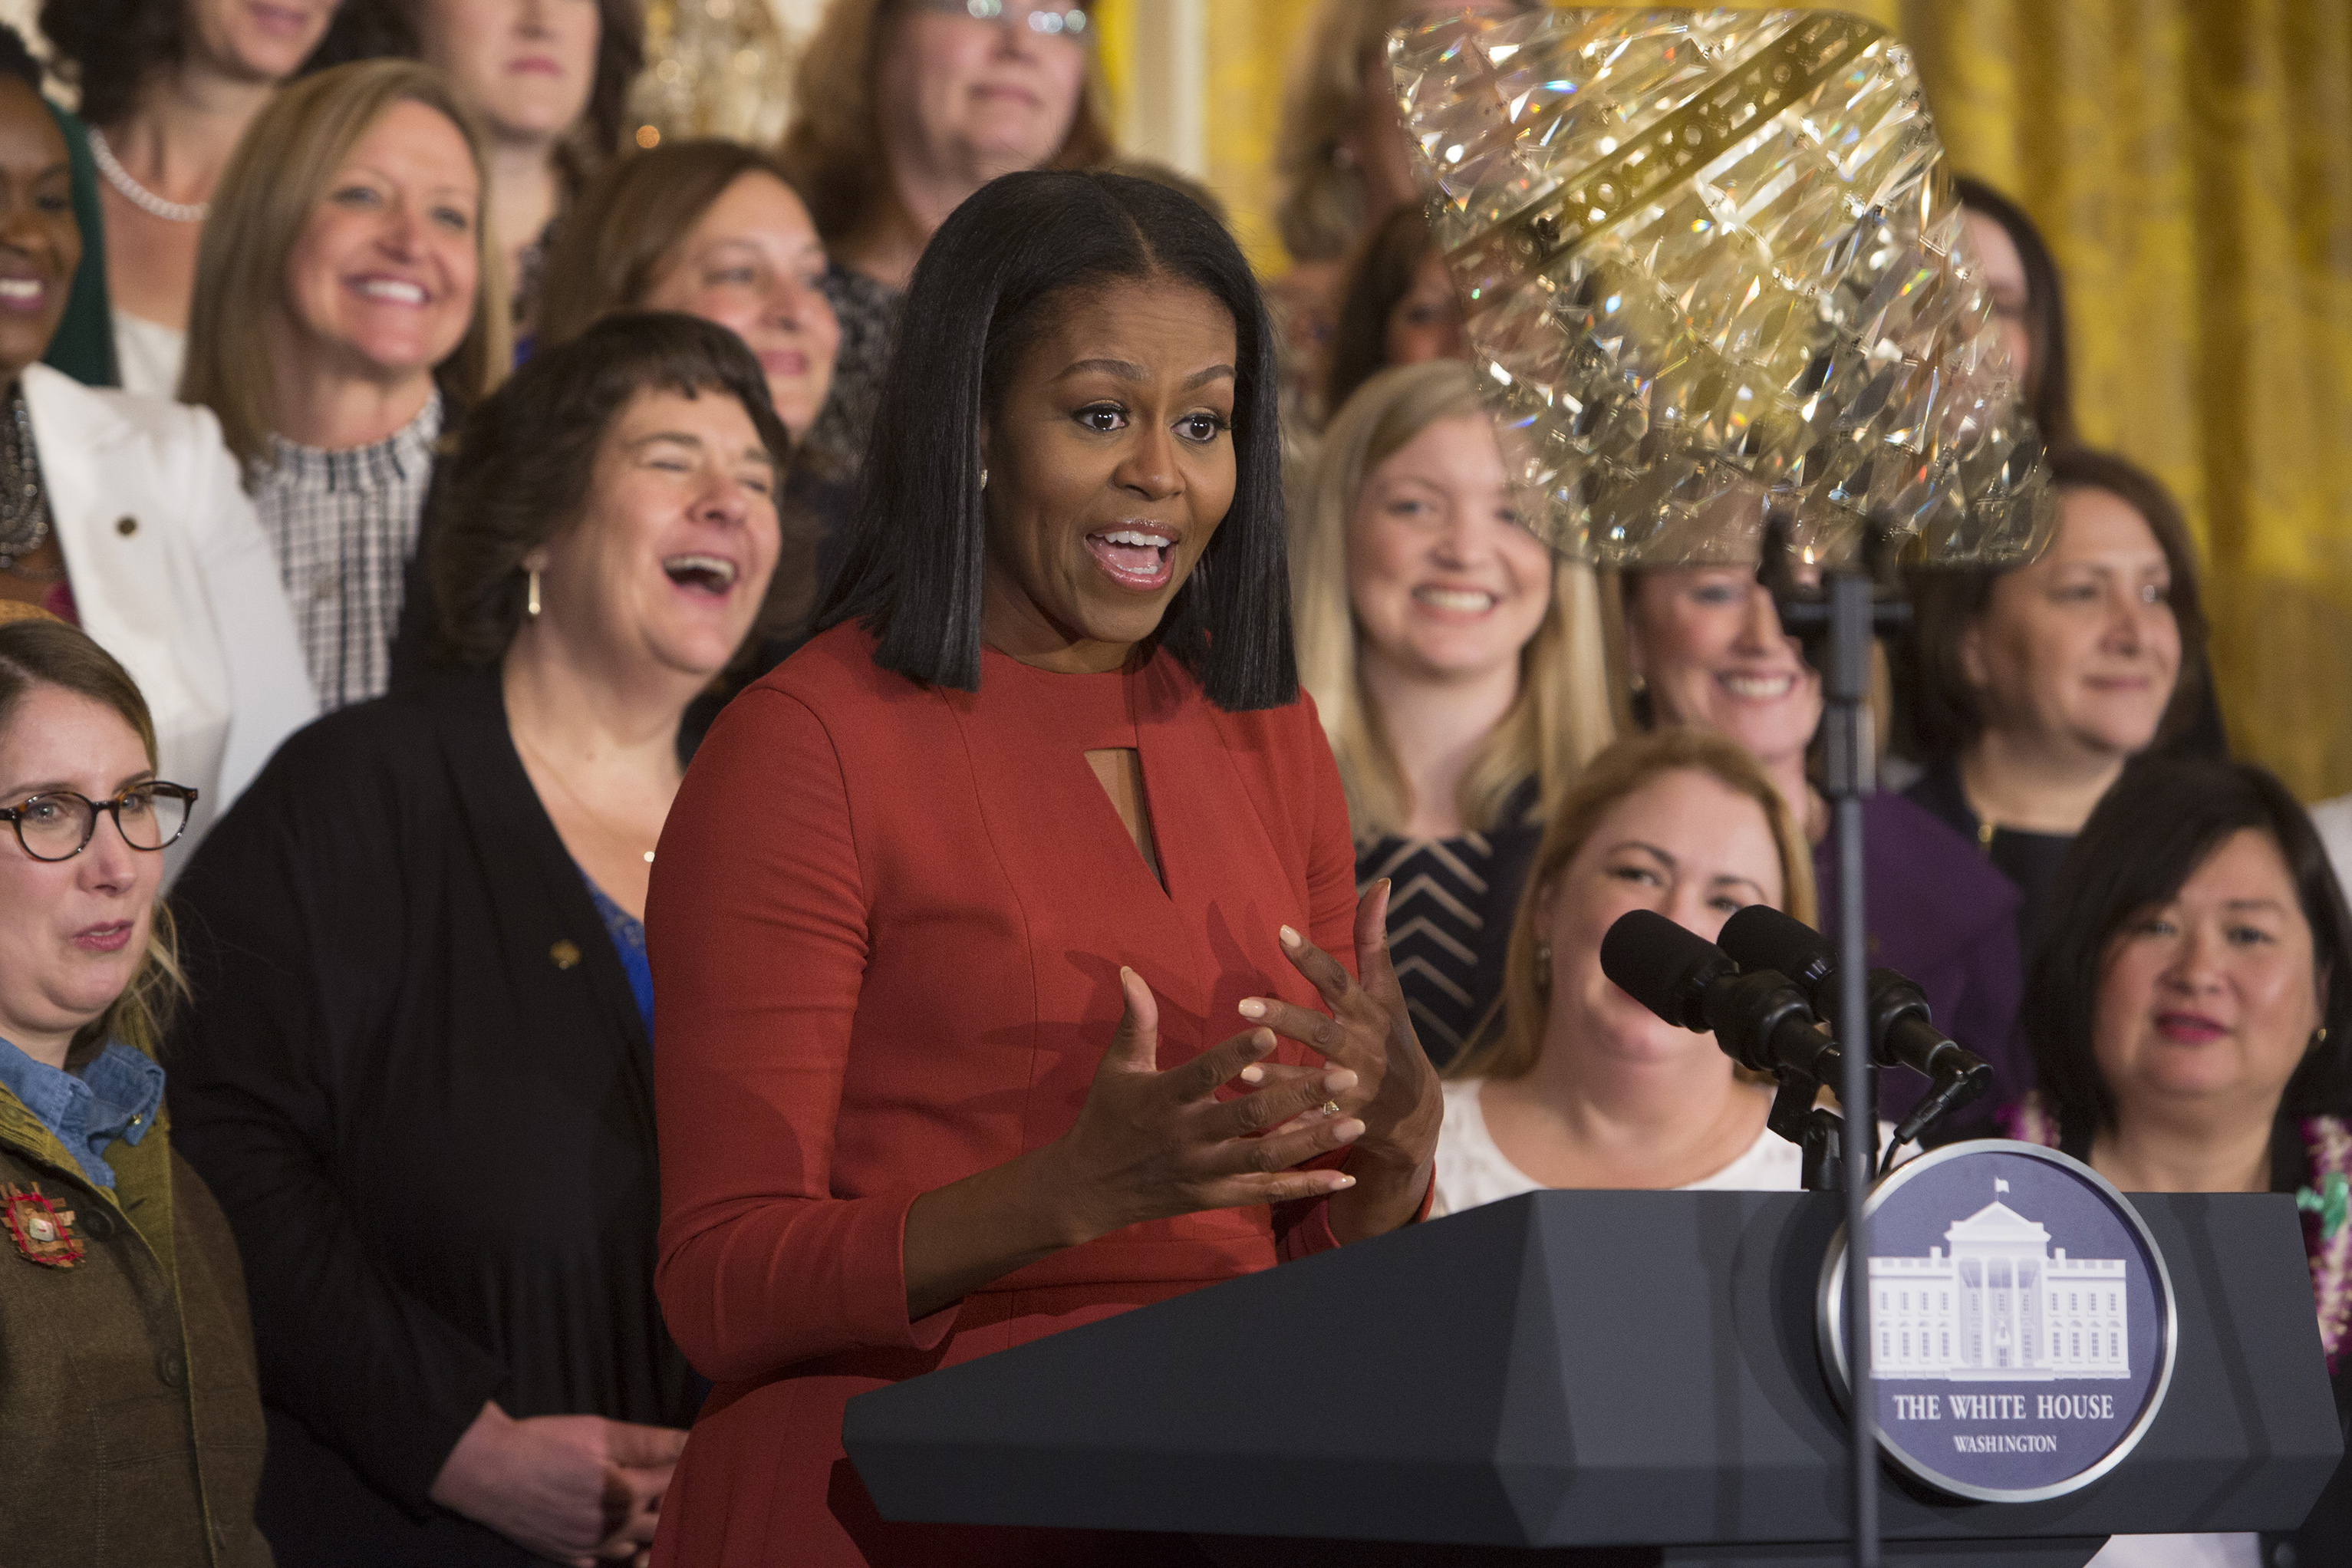 Michelle Obama gives her final remarks as First Lady at the 2017 School Counselor of the Year event at the White House on Jan. 5, 2017.